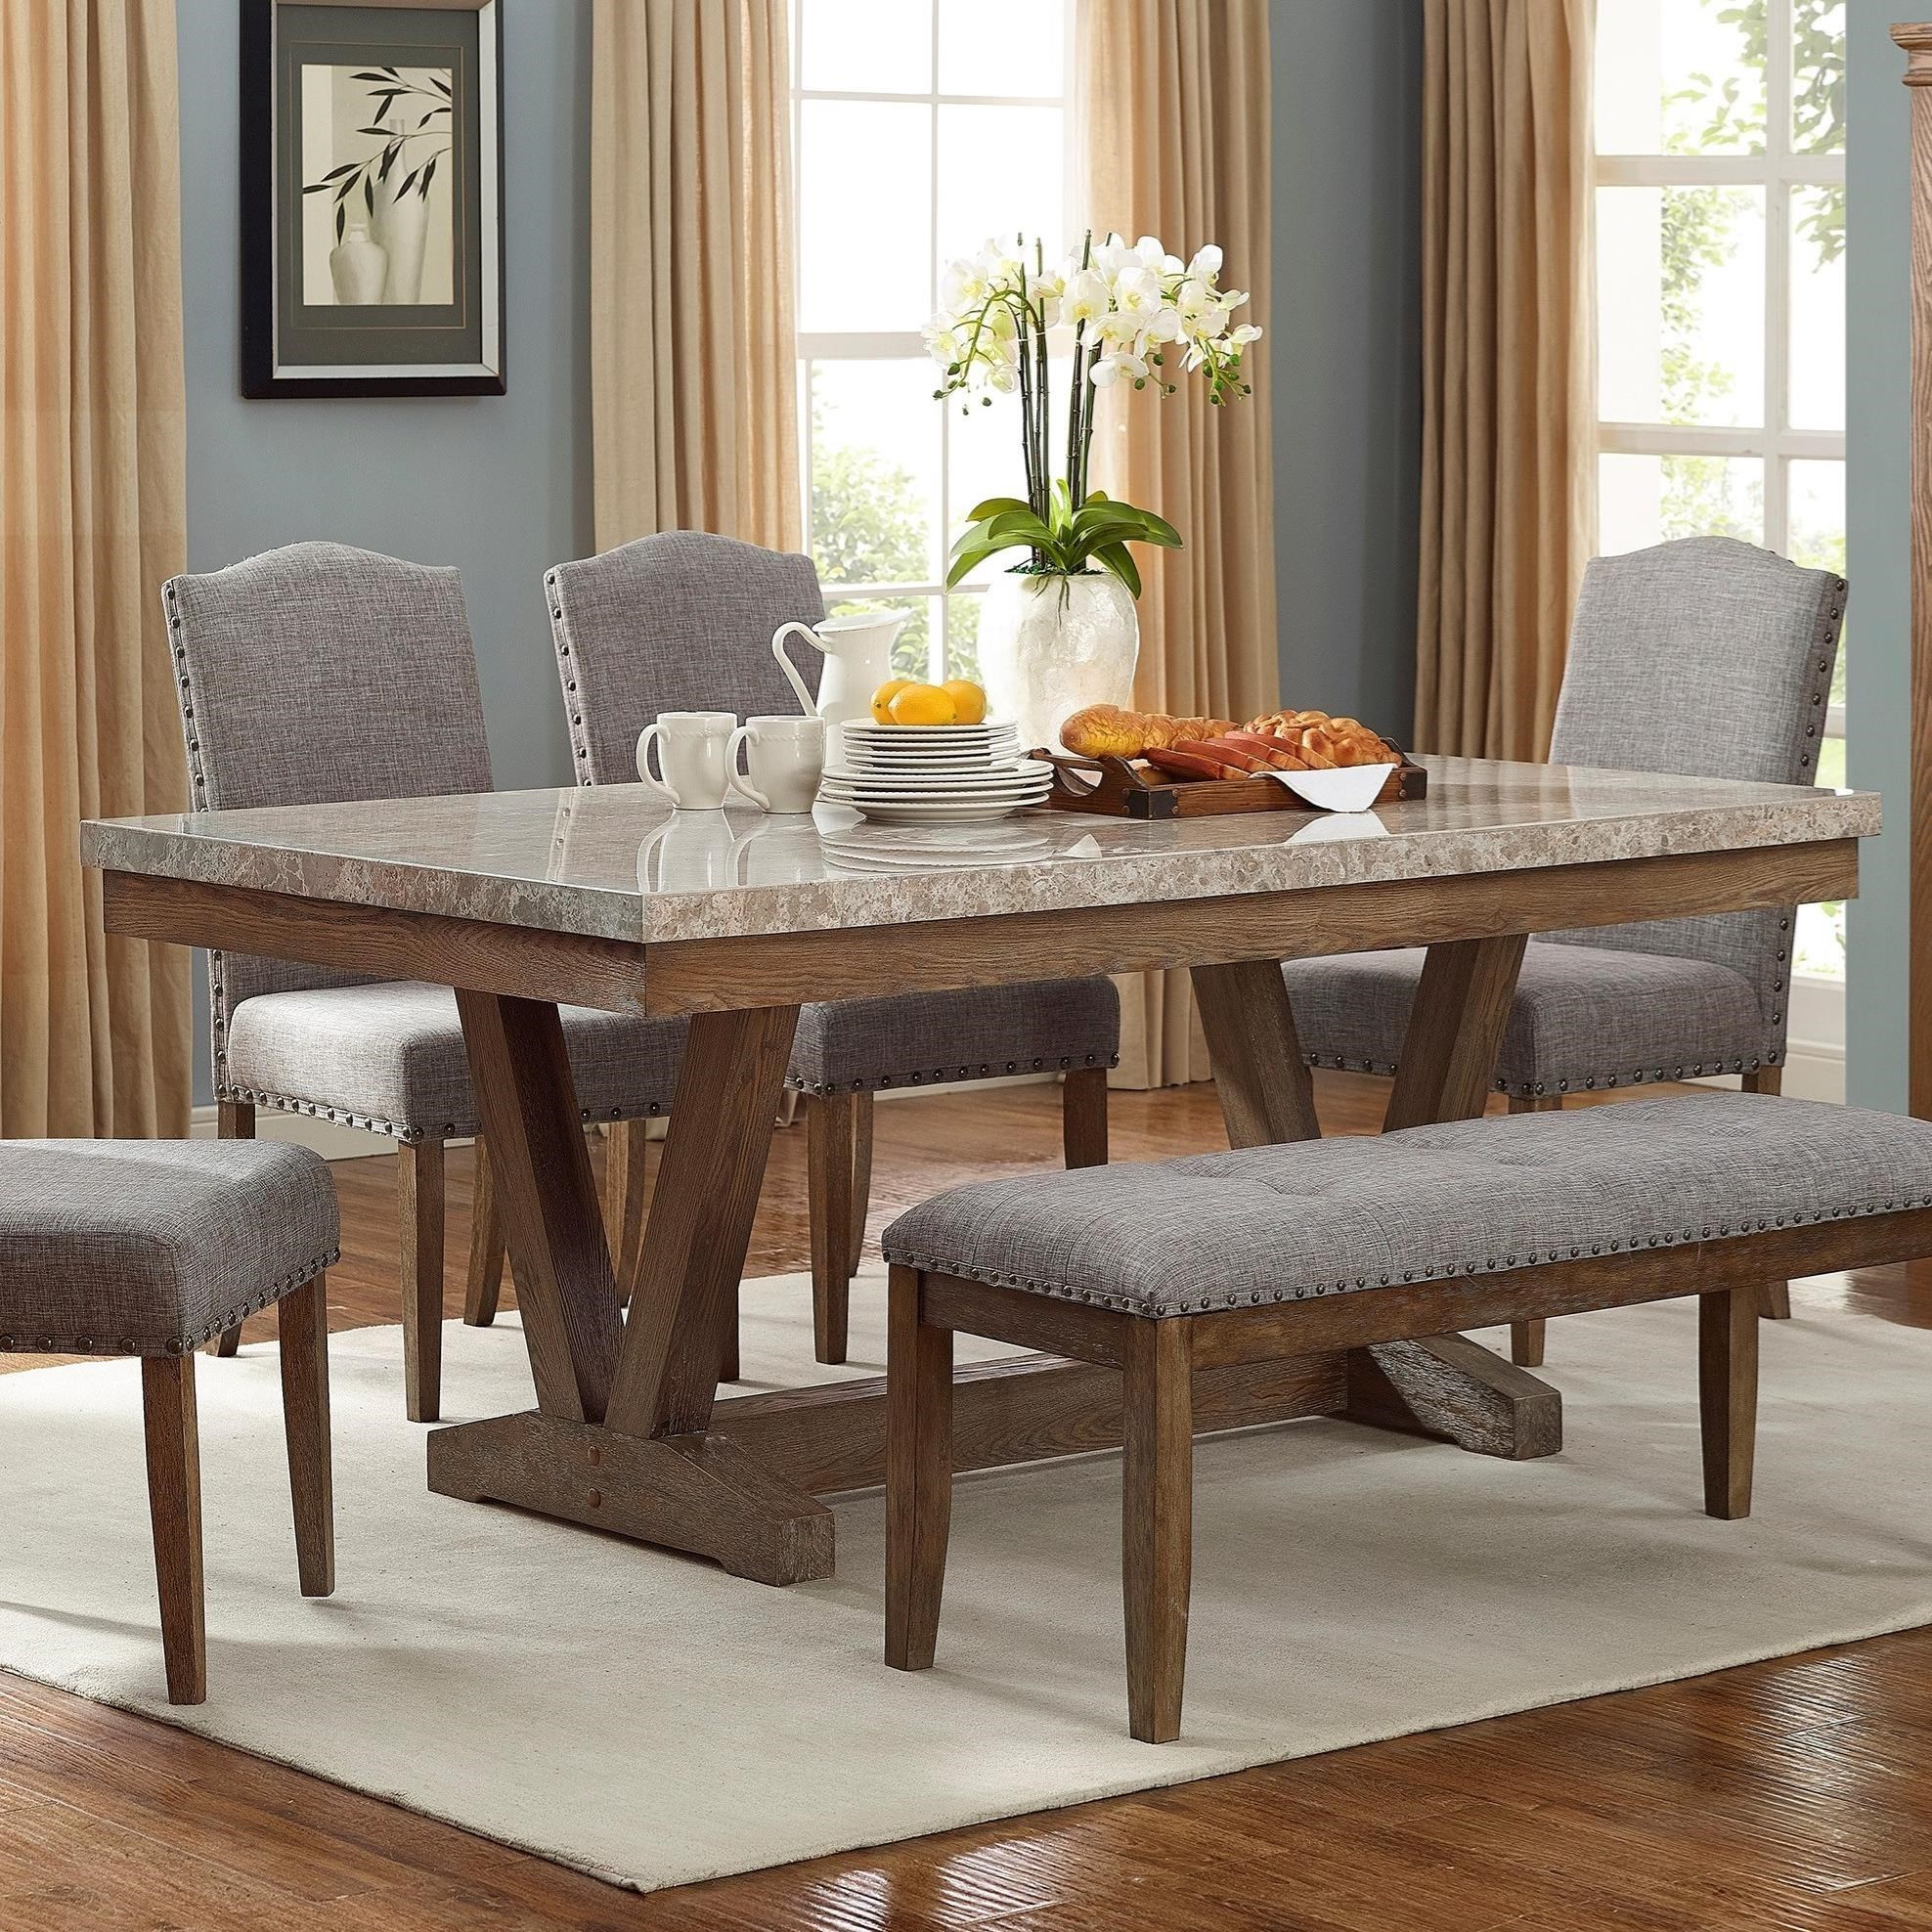 Vesper Dining Dining Table by Crown Mark at Wilcox Furniture